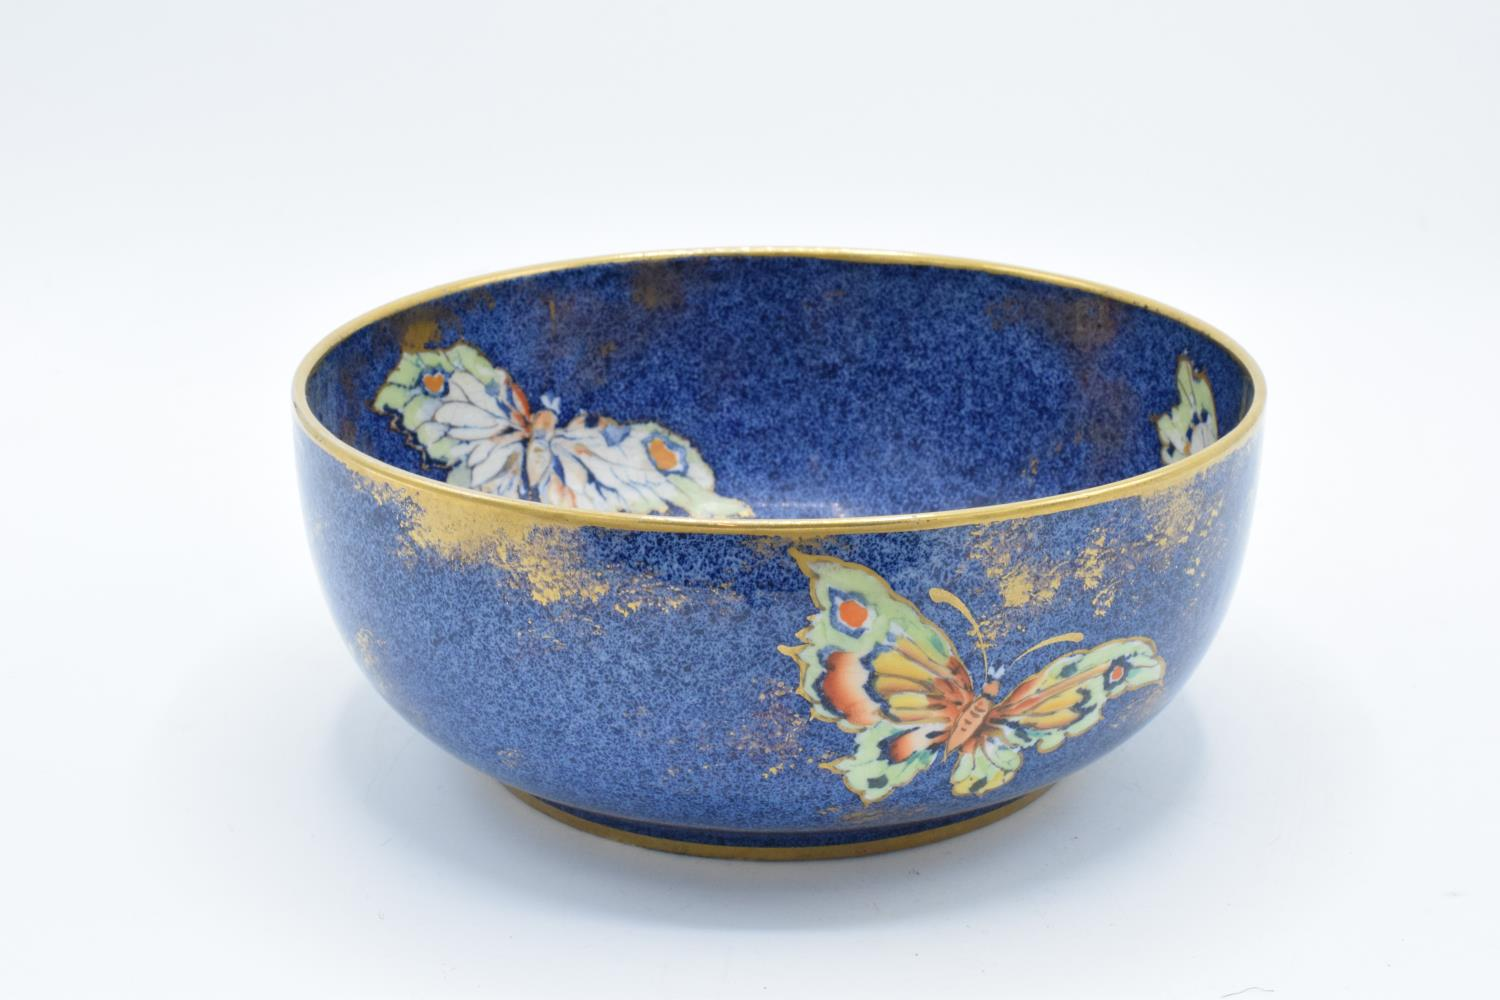 Rialto Ware pottery bowl with butterflies decoration. In good condition with no obvious damage or - Image 3 of 6